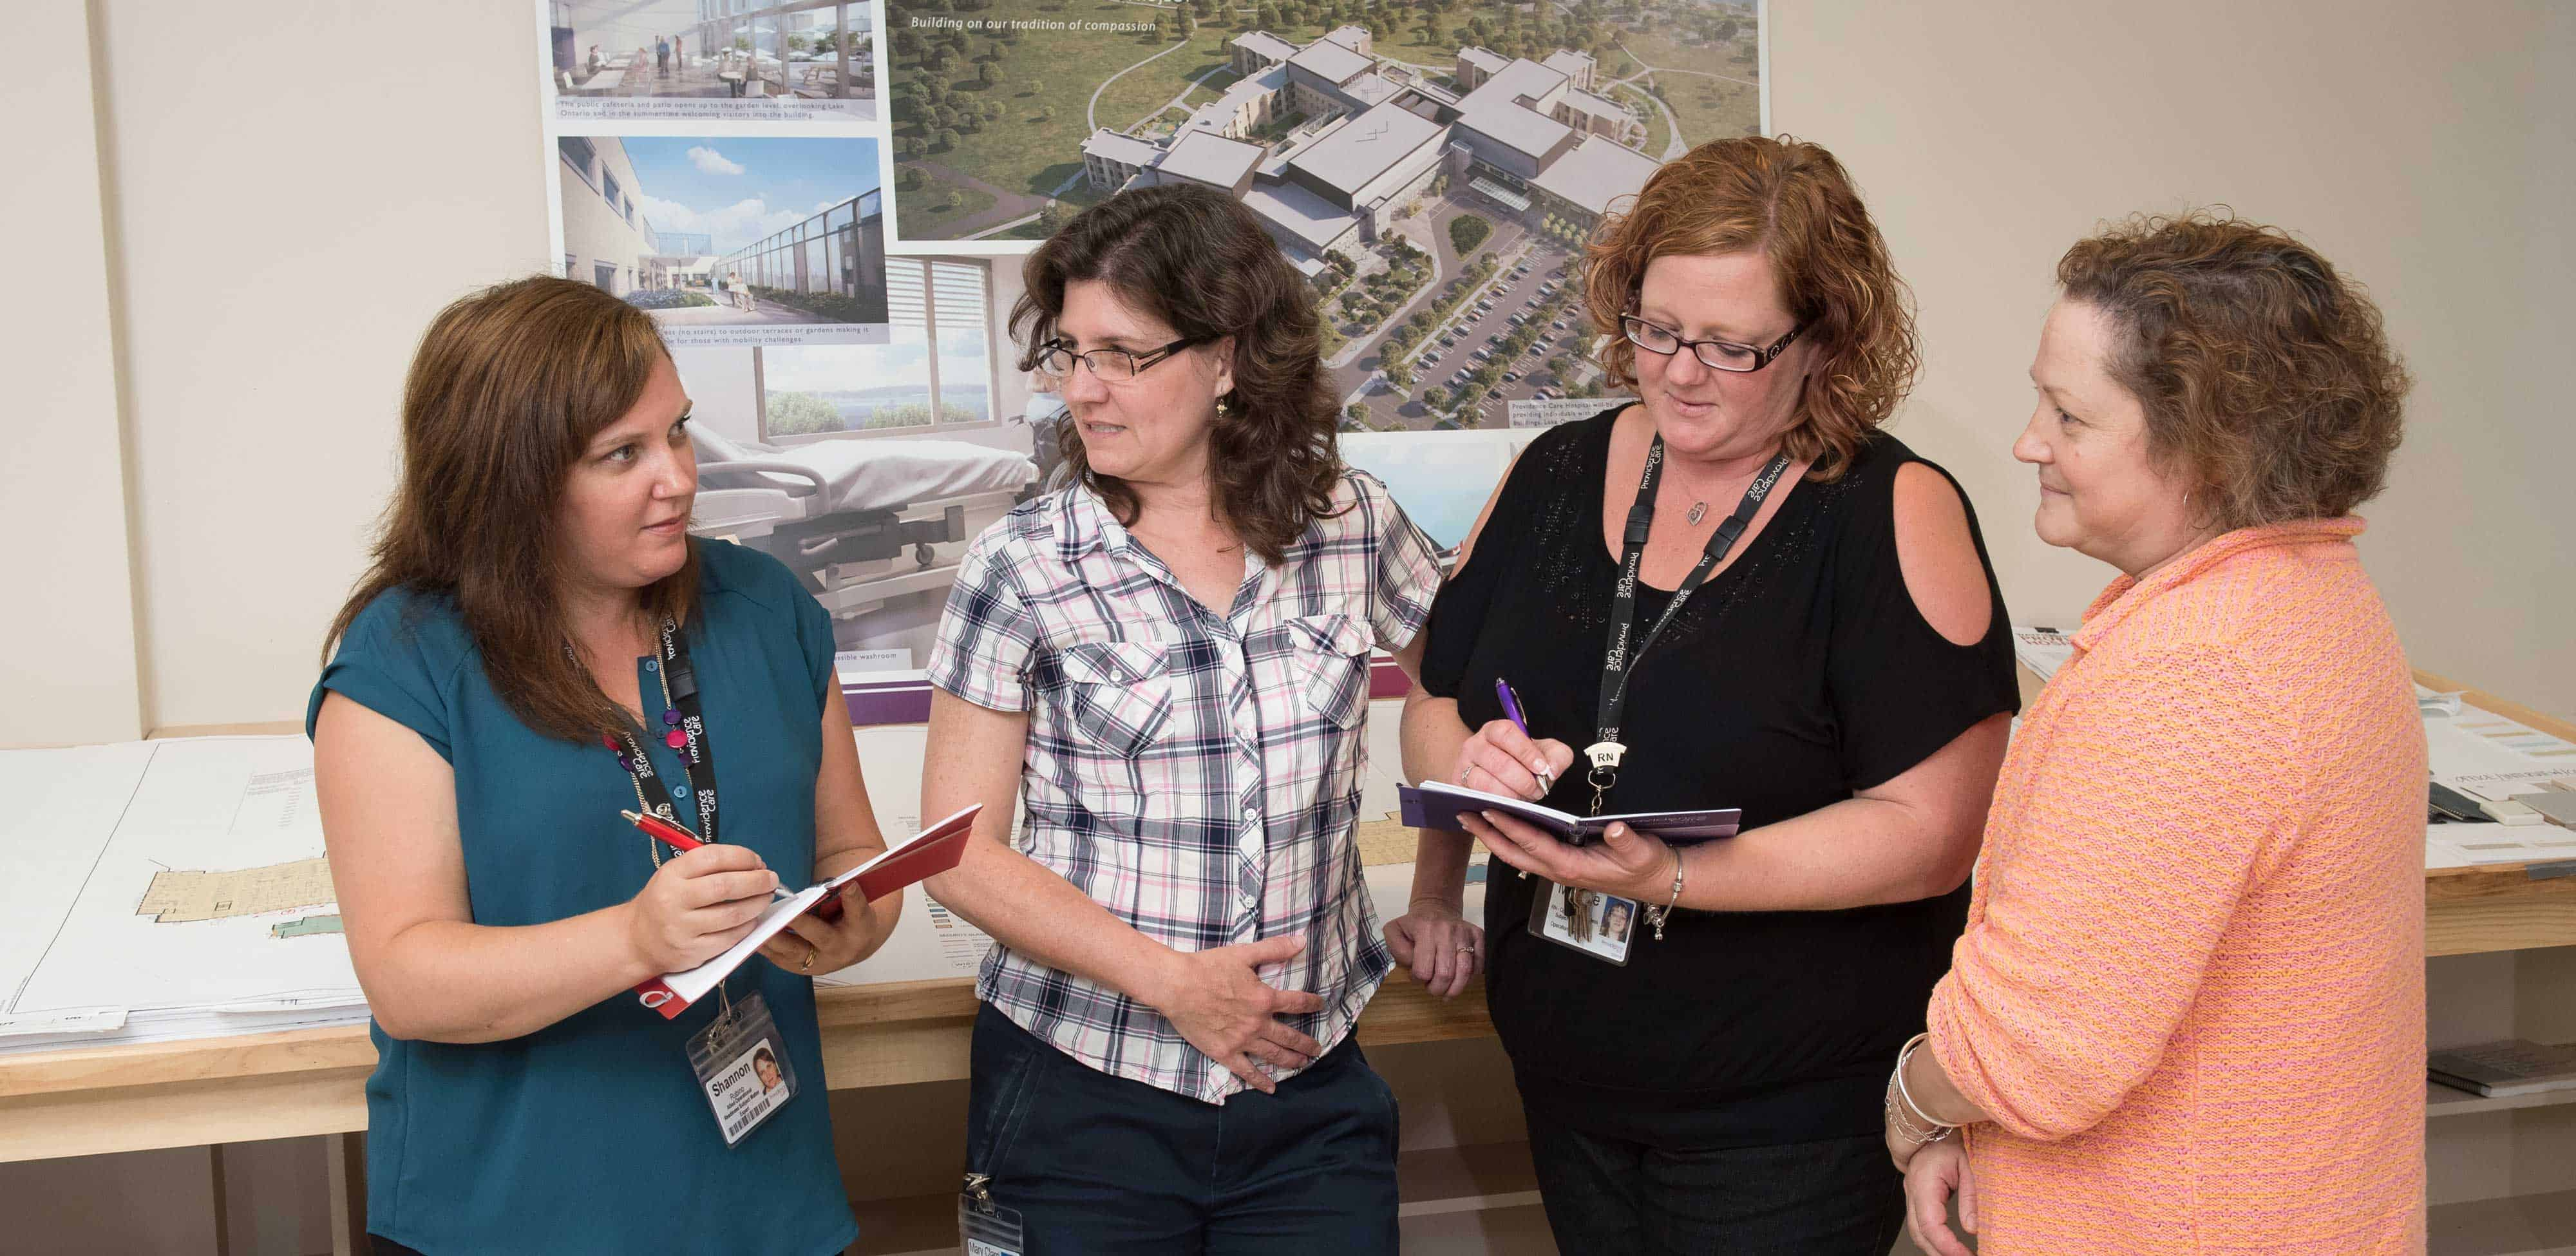 Staff Exchange launches at Providence Care